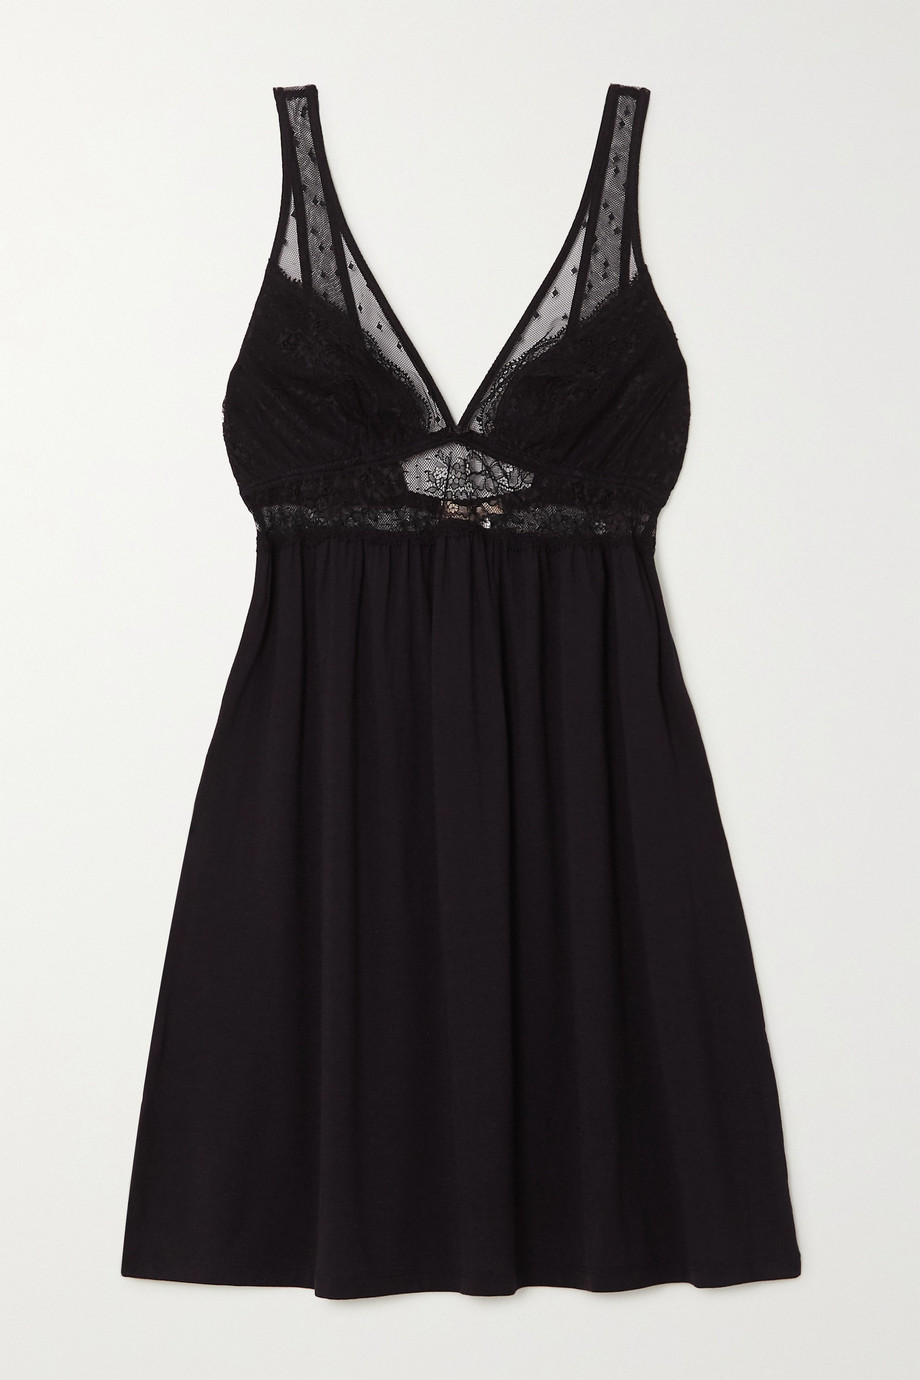 Eberjey Love Me stretch-modal, lace and point d'esprit tulle chemise